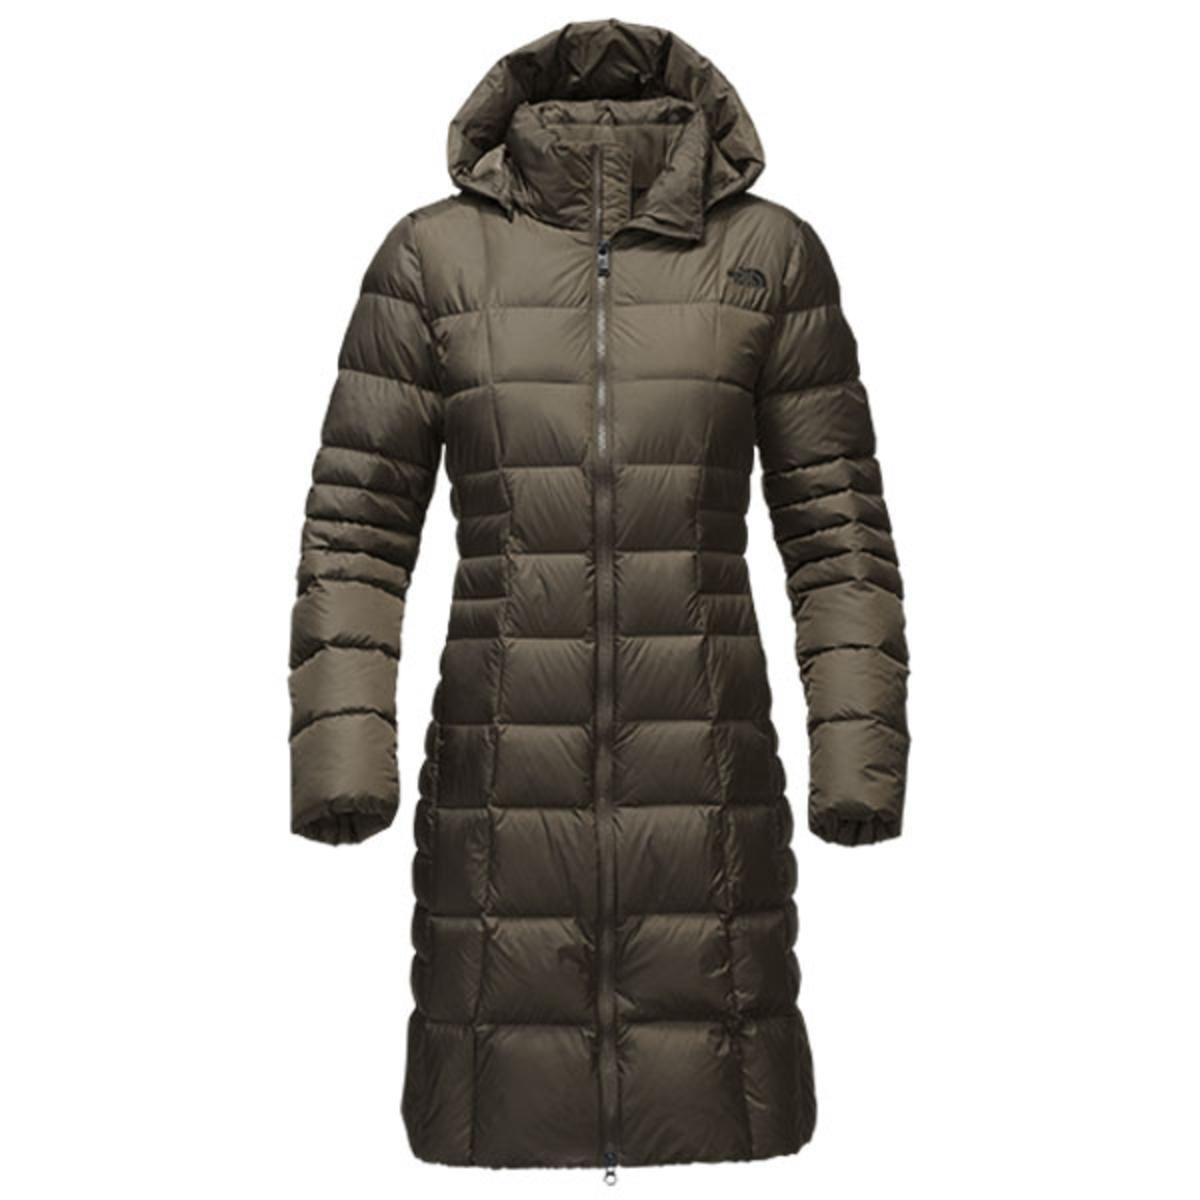 41683ecd9c The North Face Women s Metropolis Parka II Jacket - New Taupe Green - The  Warming Store